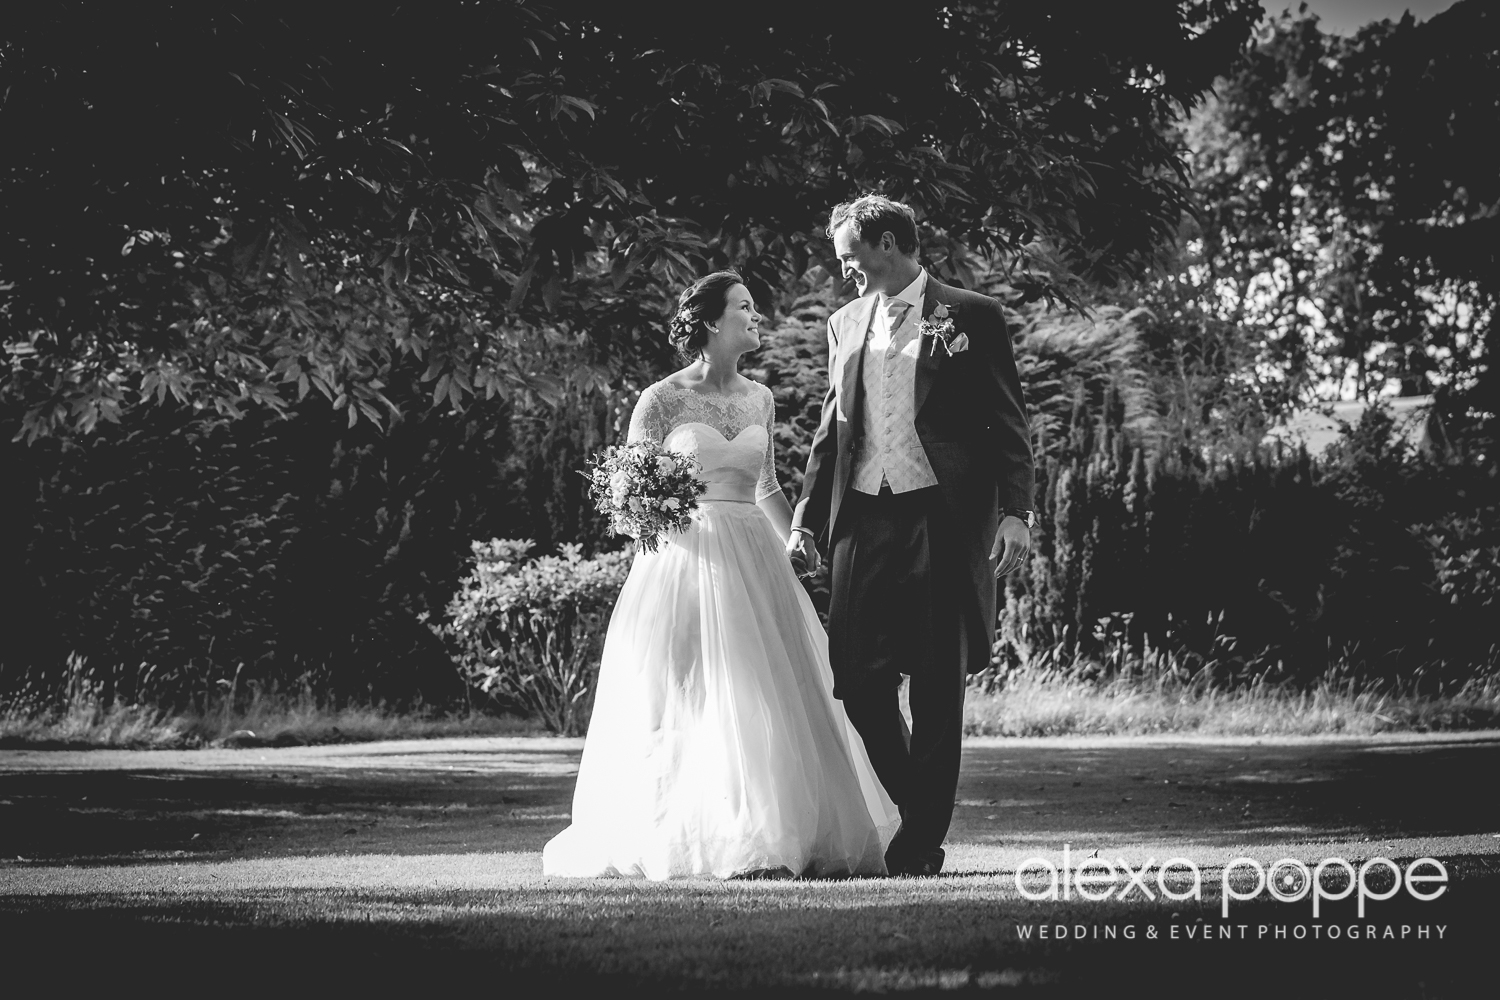 NH_wedding_huntshamcourt_devon-5.jpg